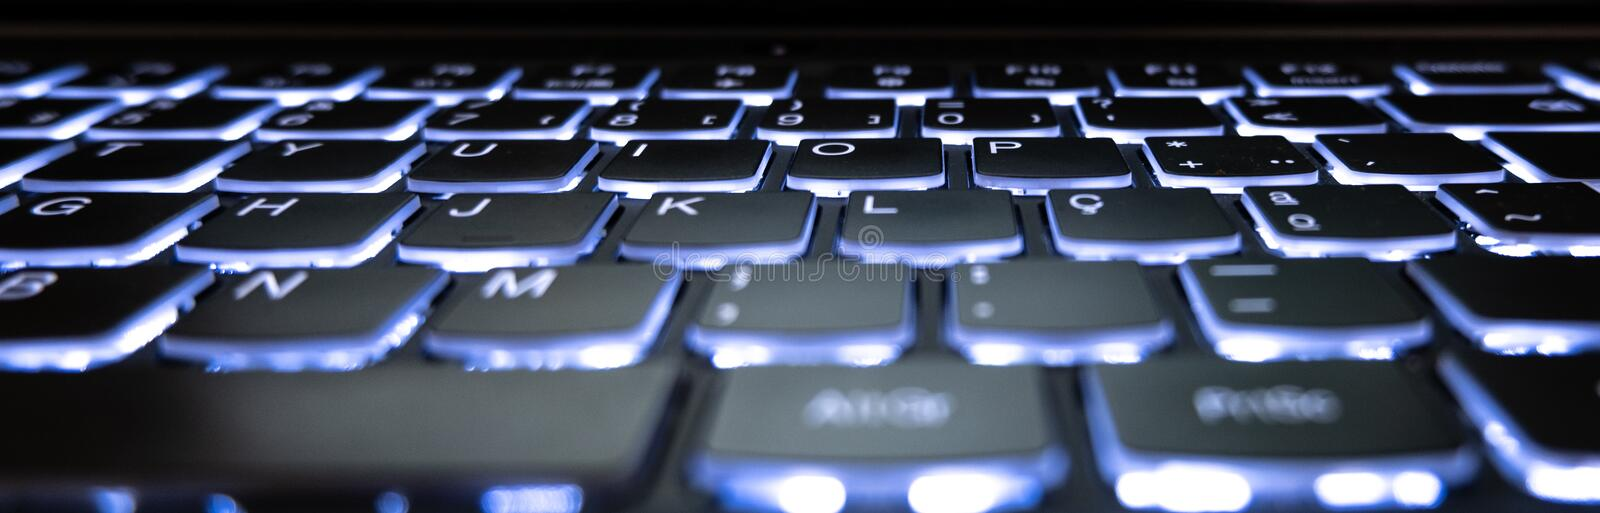 Gaming laptop computer keyboard with backlit keys. Low angle. Shallow depth of field royalty free stock images